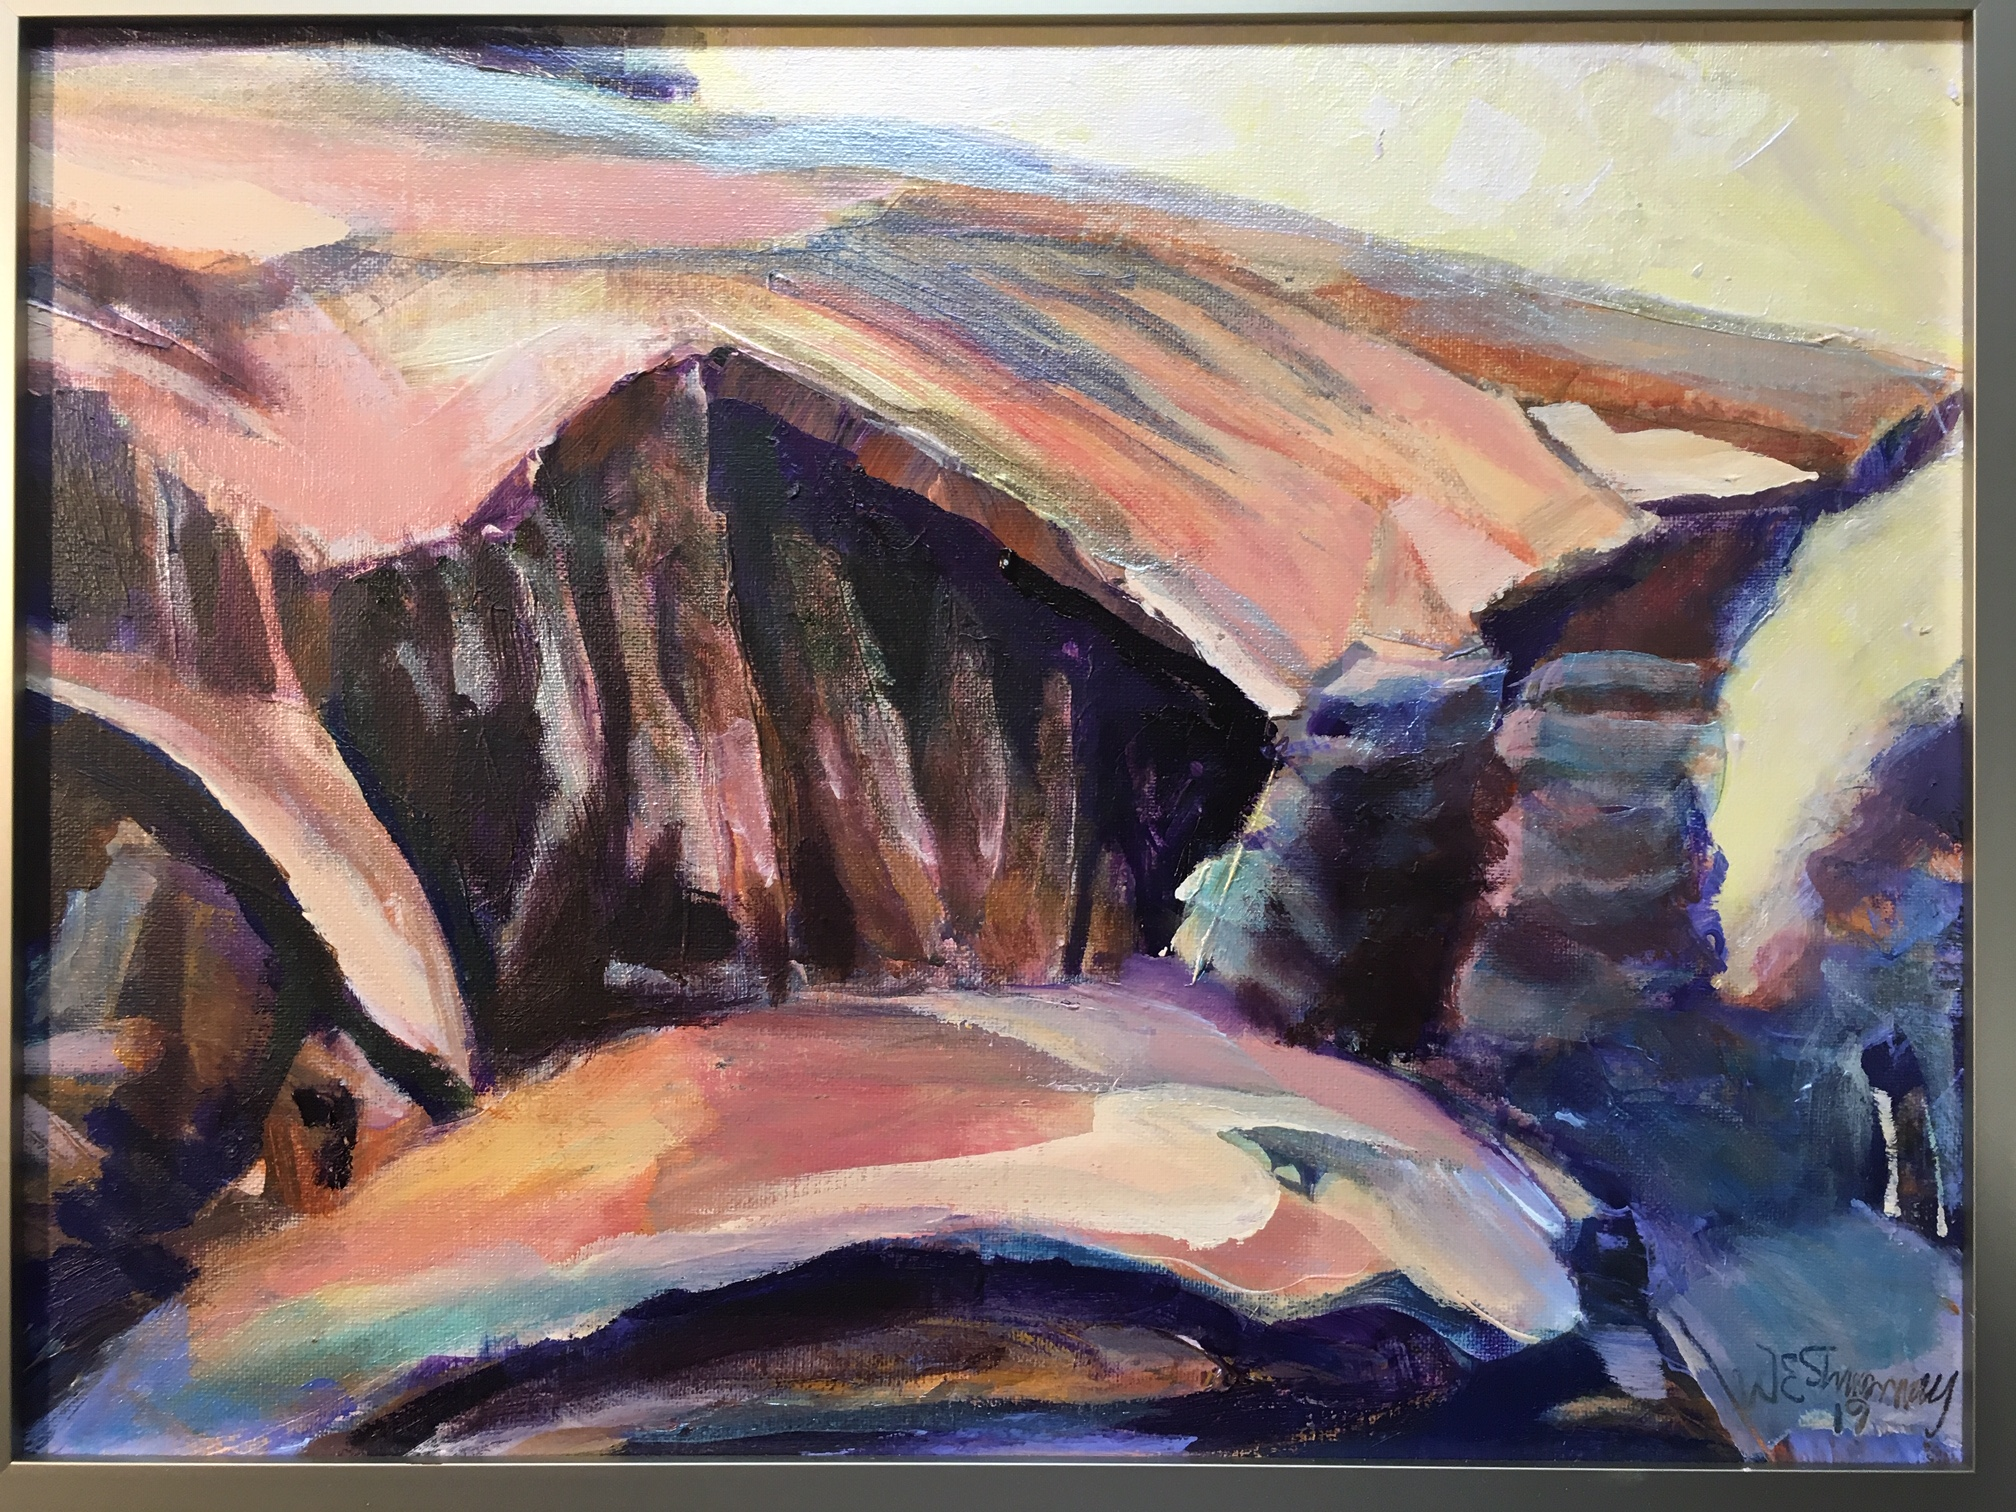 Desert Poem by W.E.Shumway acrylic 11 X 14 inches.JPG